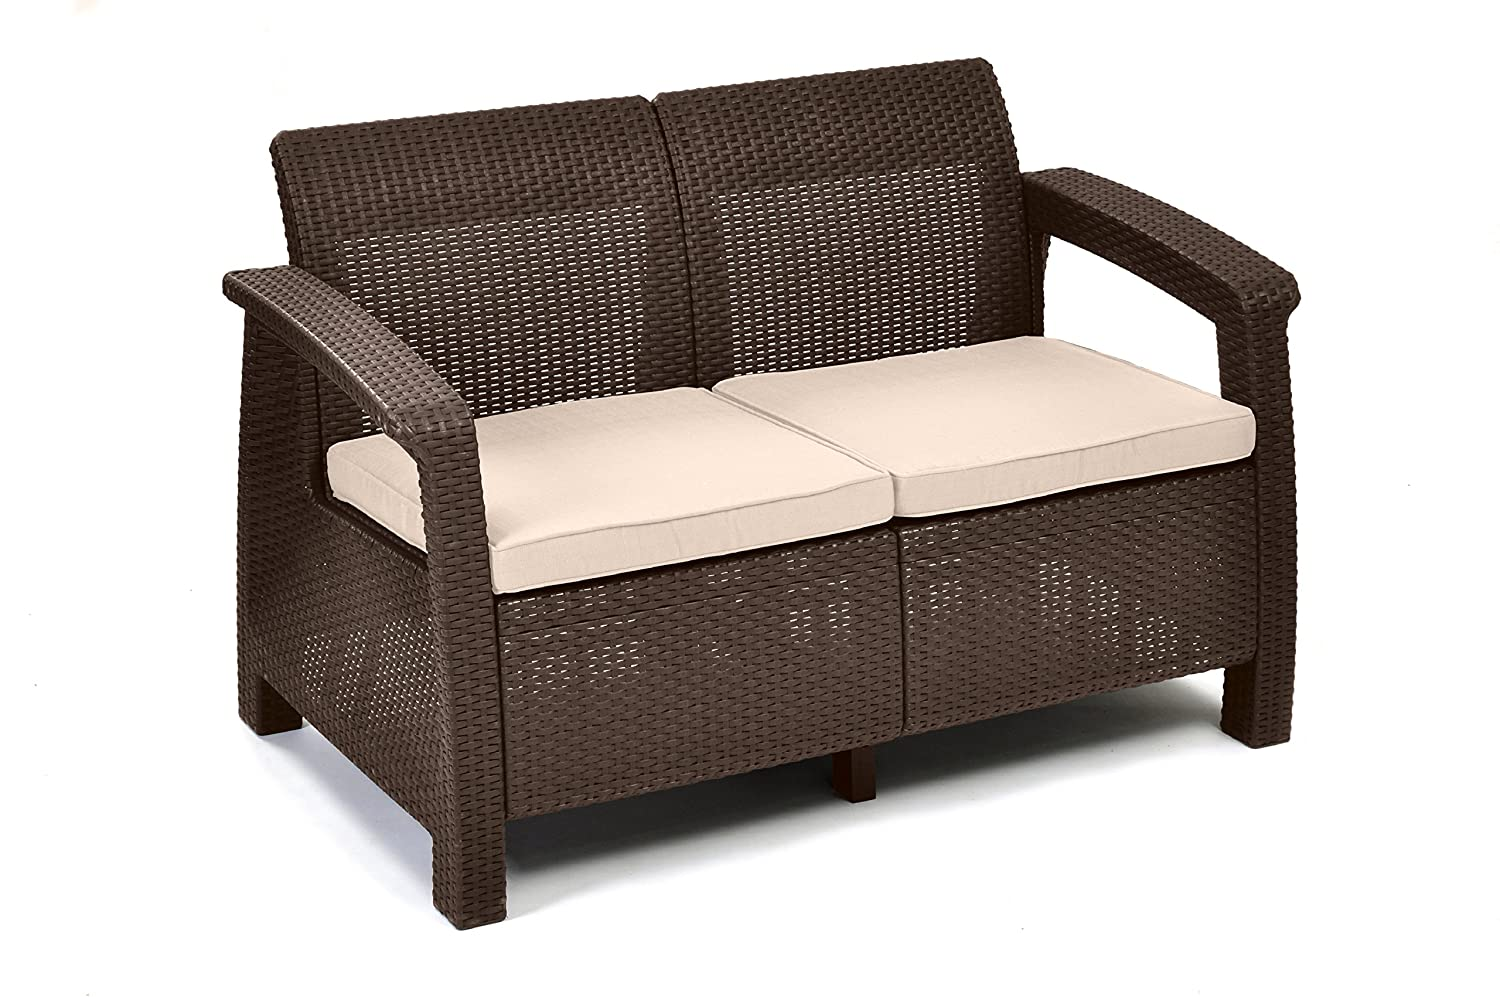 Rattan Outdoor Chairs Part - 45: Amazon.com : Keter Corfu Love Seat All Weather Outdoor Patio Garden  Furniture W/ Cushions, Brown : Patio Loveseats : Patio, Lawn U0026 Garden